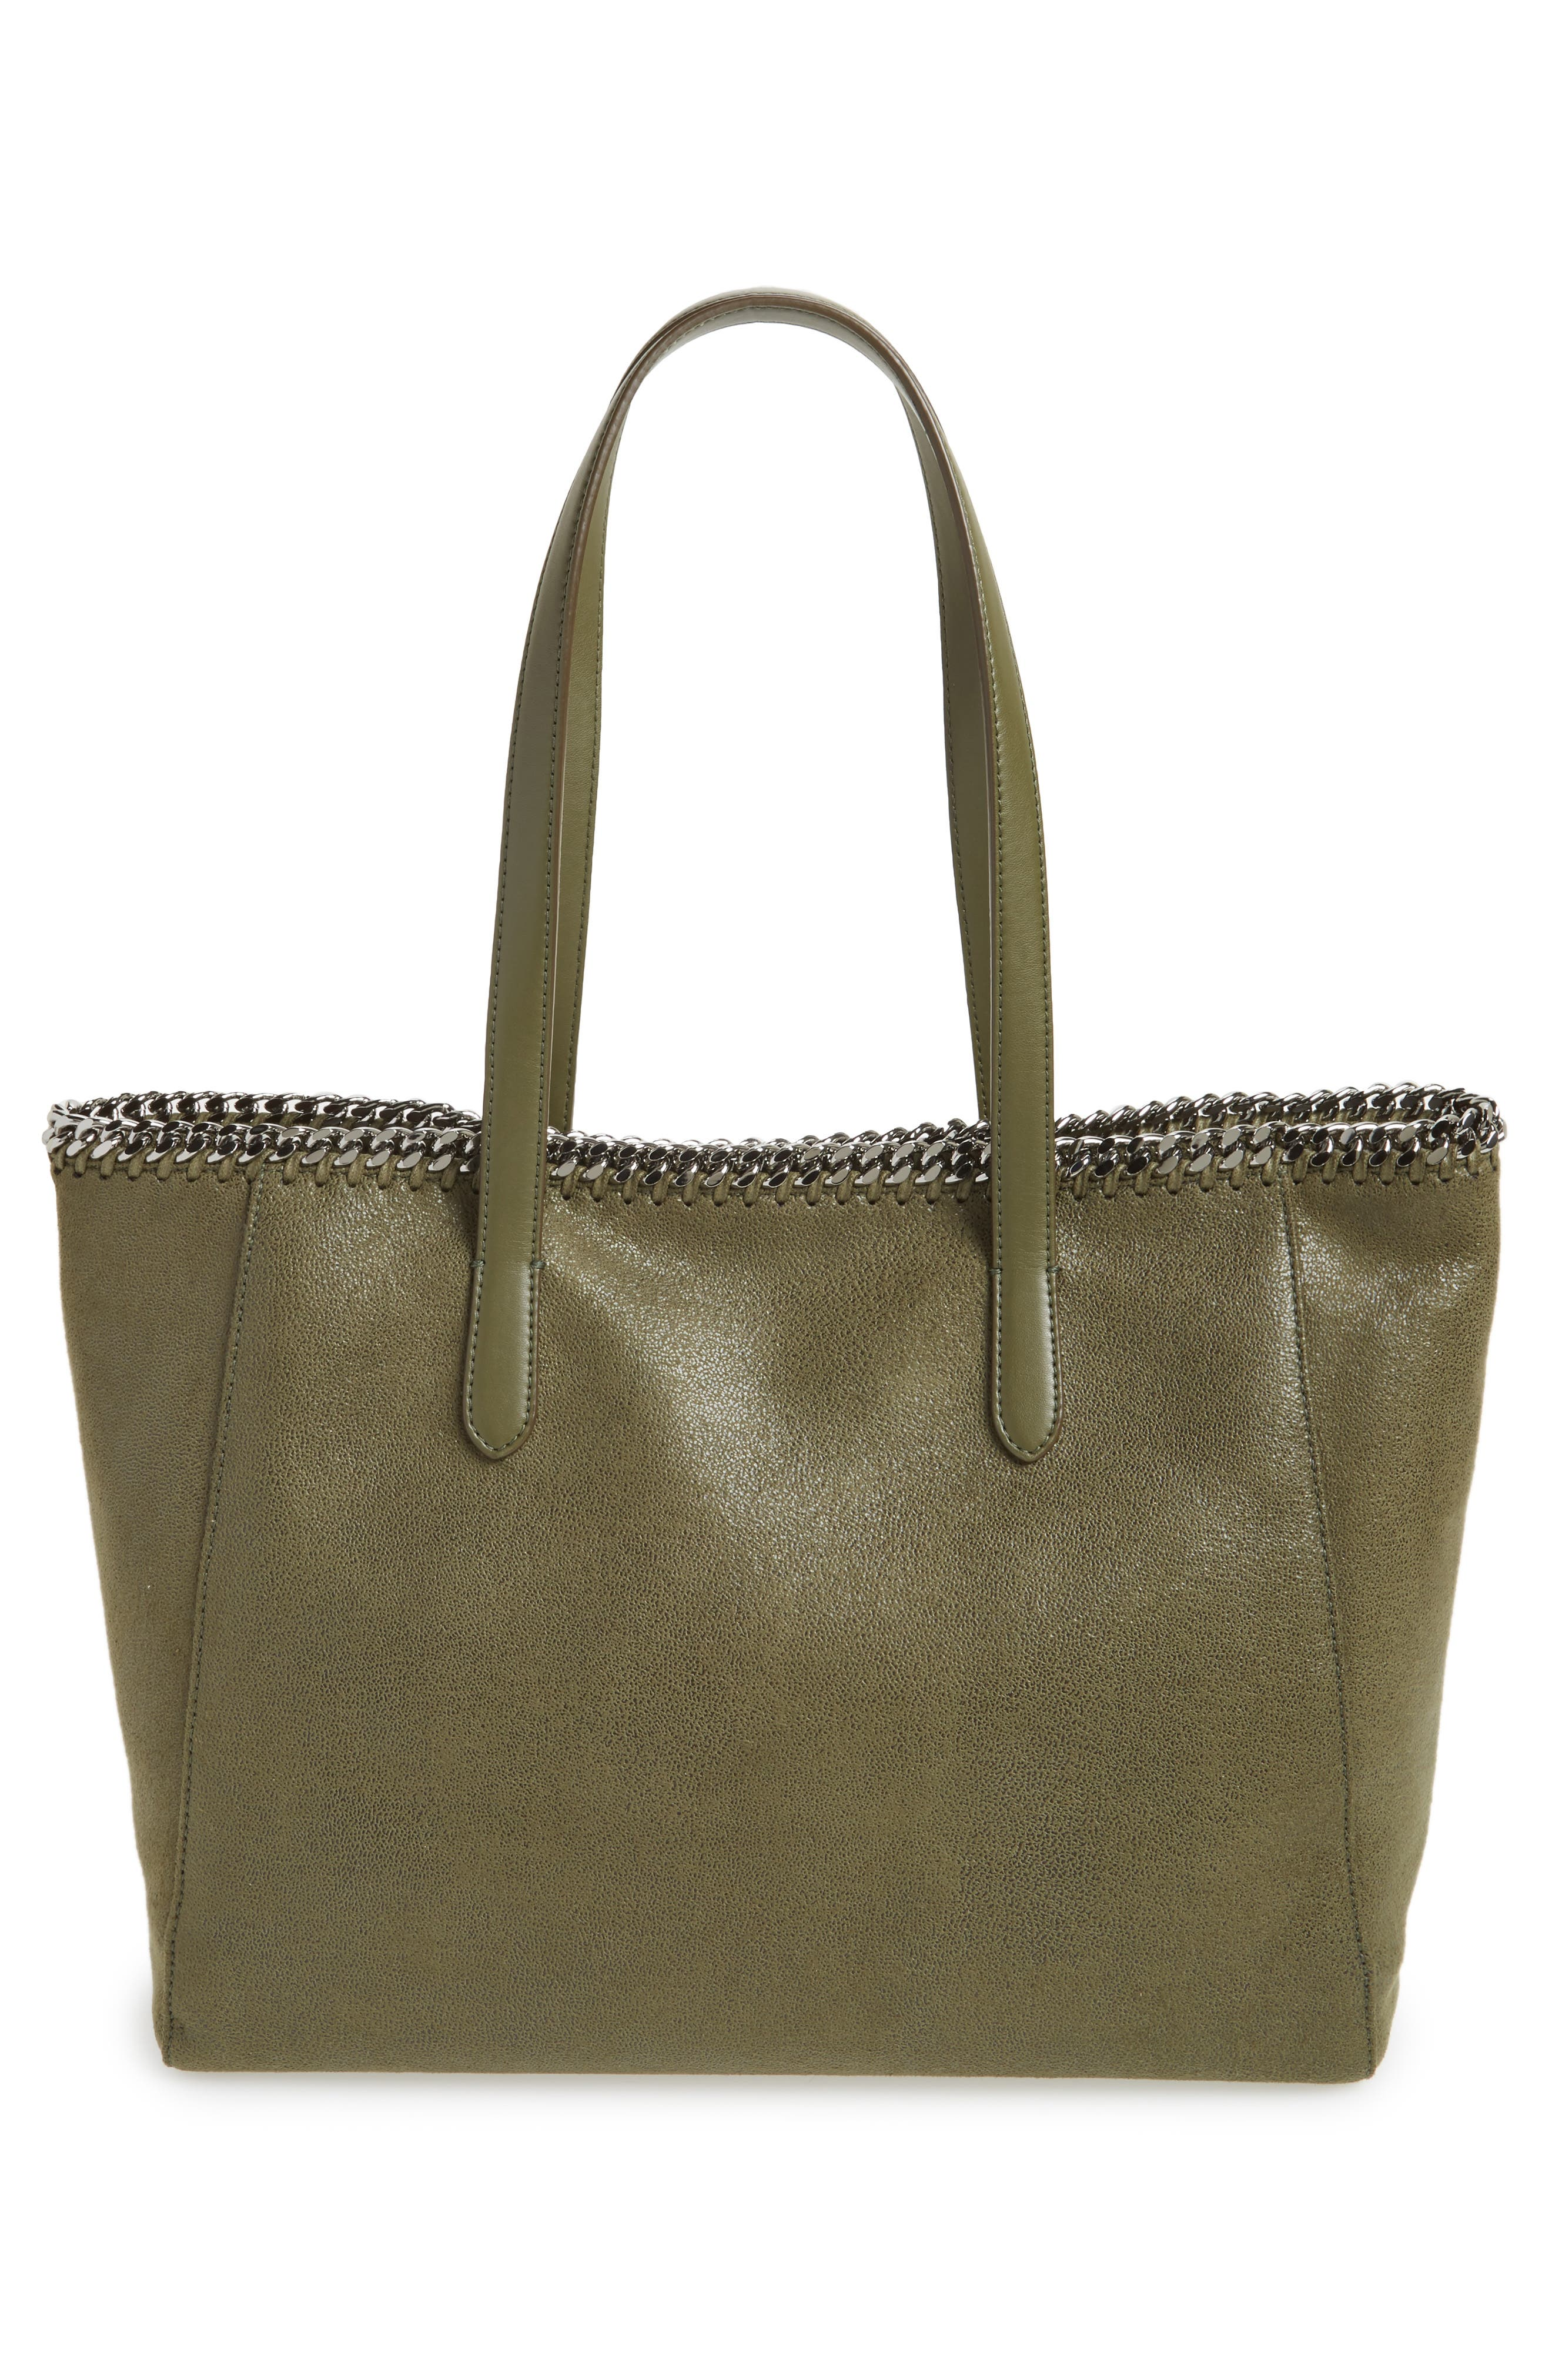 'Falabella - Shaggy Deer' Faux Leather Tote,                             Alternate thumbnail 12, color,